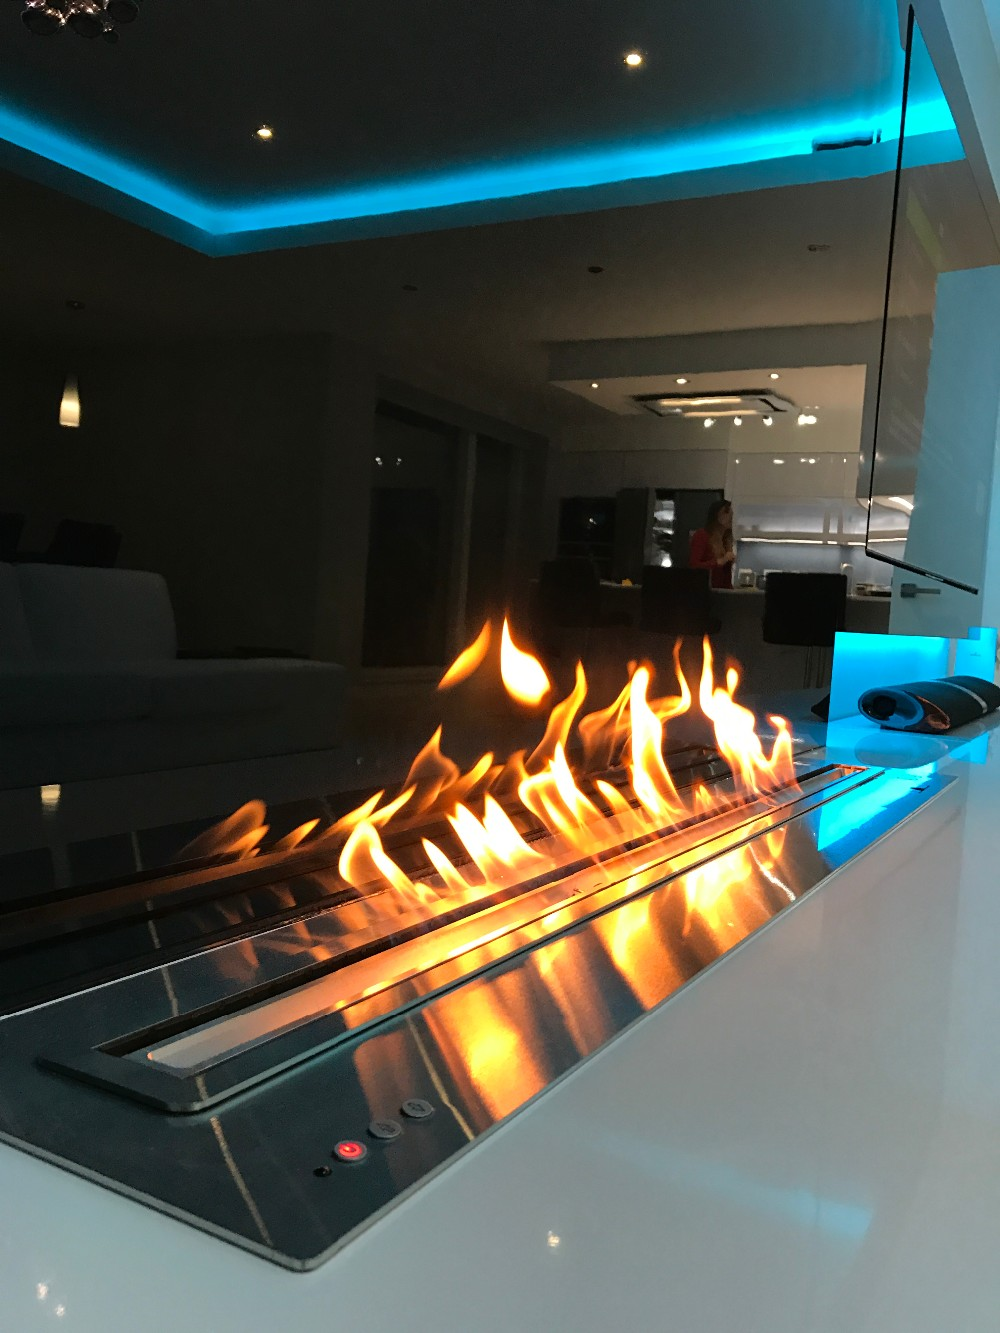 60 Inch Deluxe Inserted Indoor Auto Remote Control Wifi  Smart Black Bio Etanol Wall Electric Fireplace